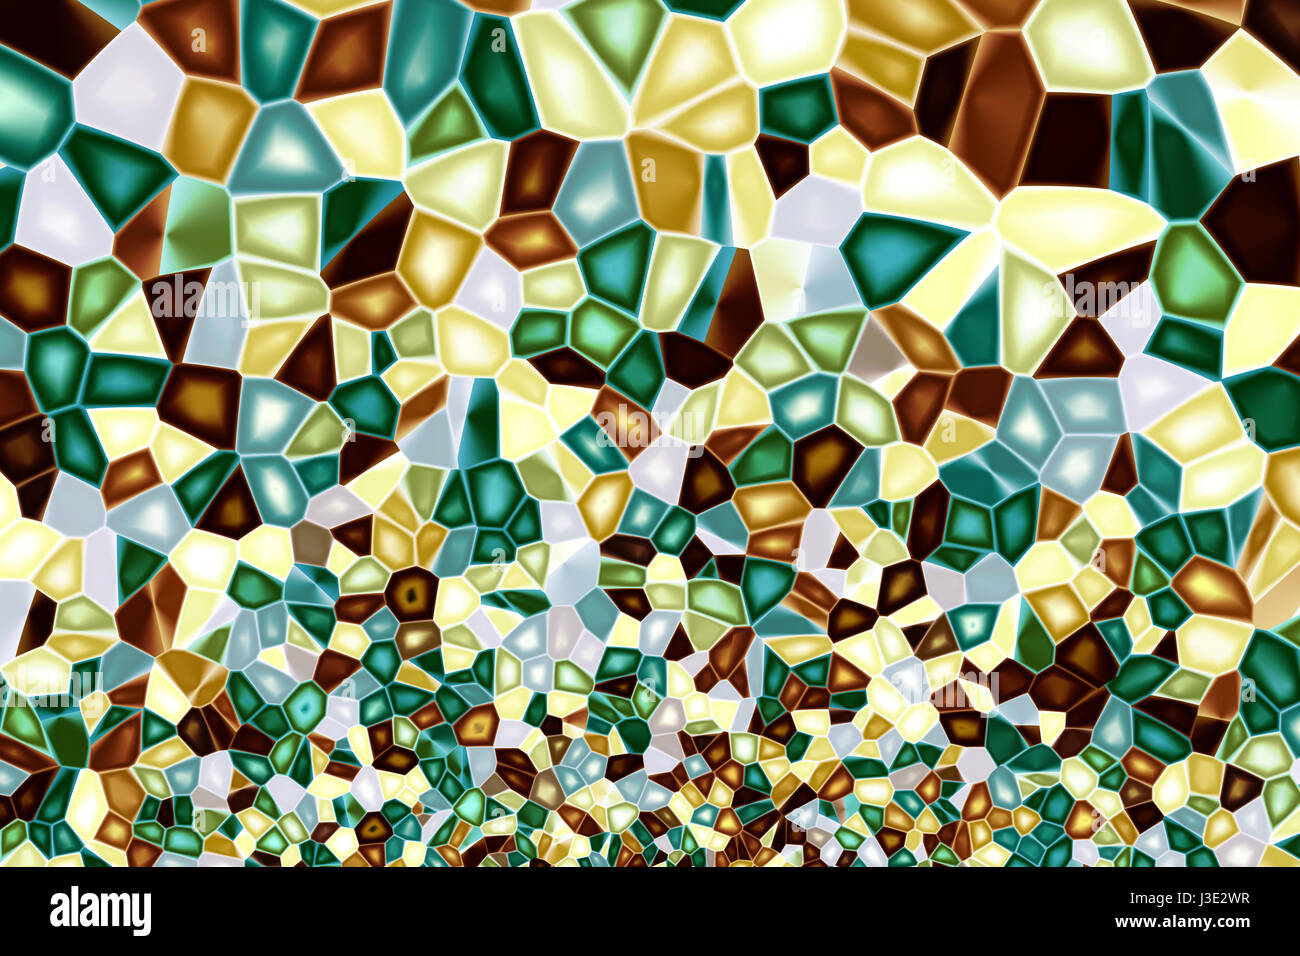 multicolored mosaic - Stock Image